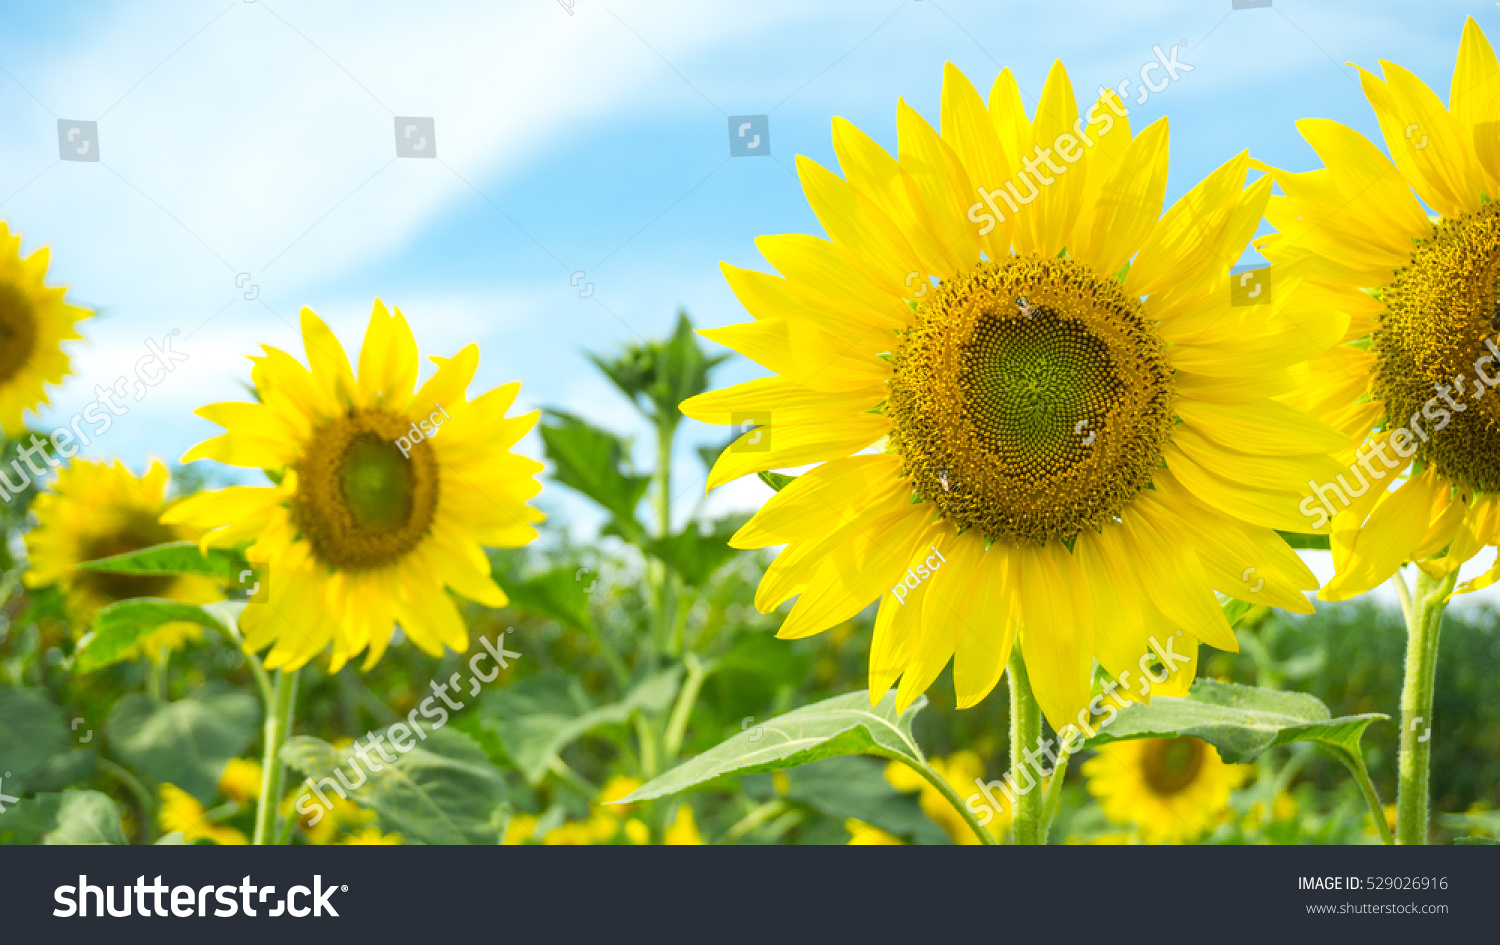 Yellow flowers and green nature concept close up beautiful id 529026916 izmirmasajfo